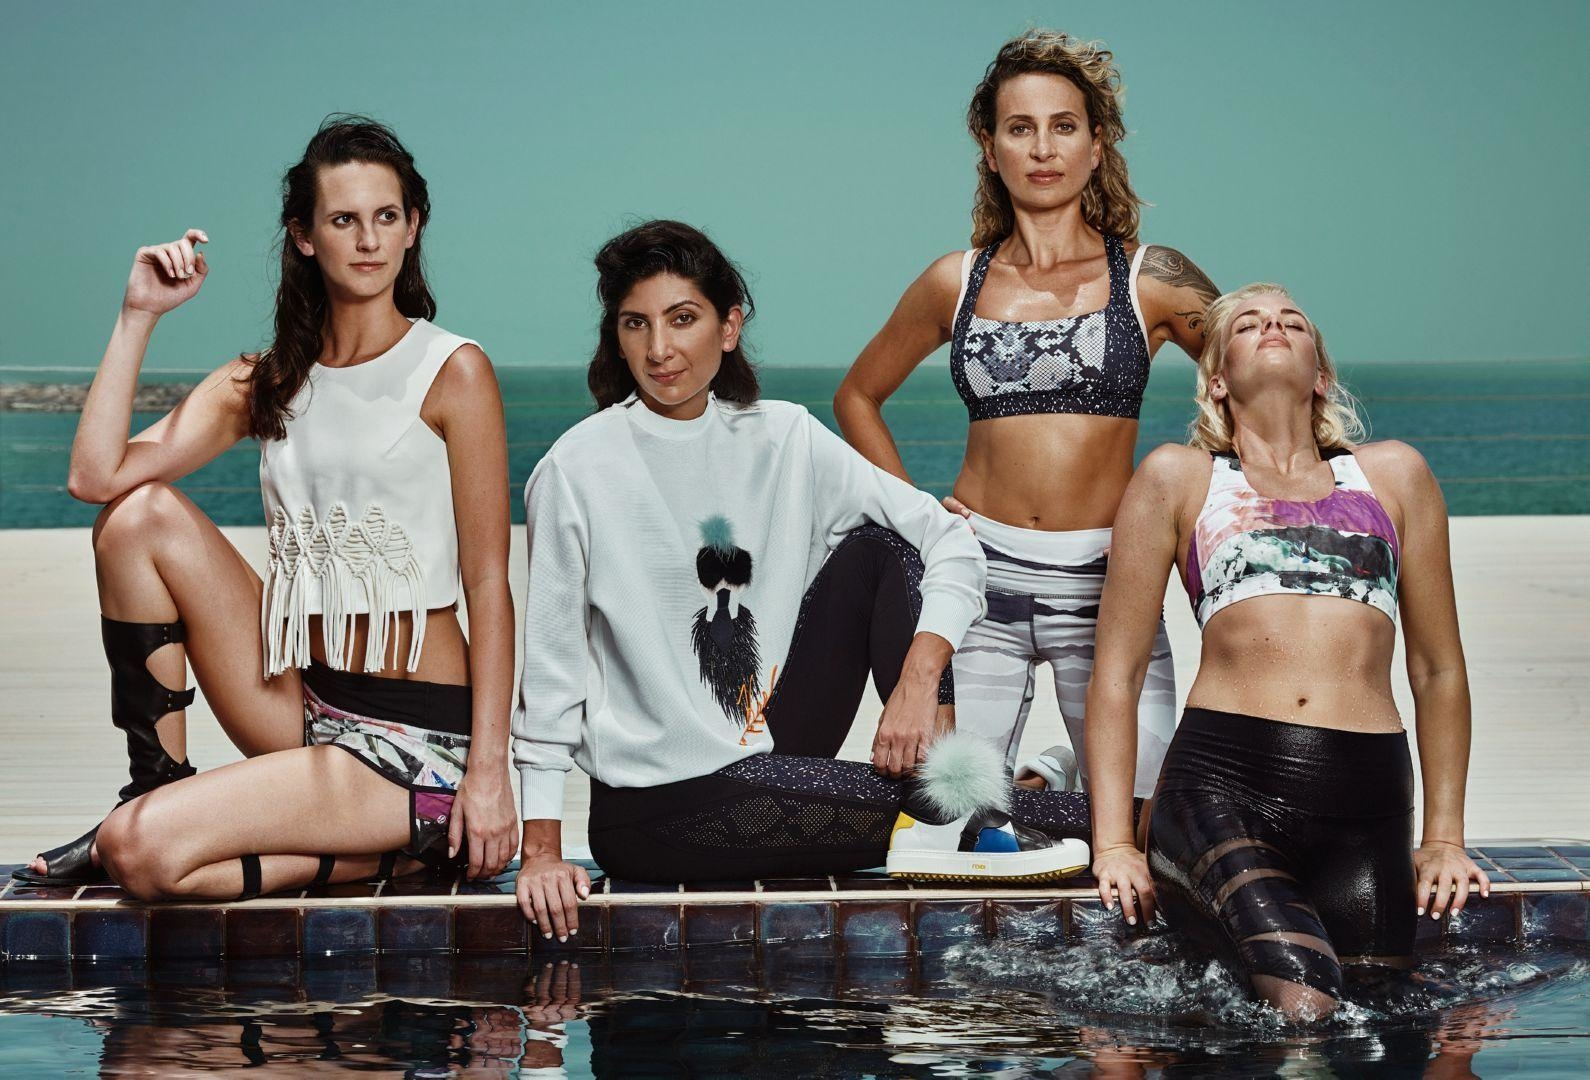 The Era Of Athleisure: Move Your Body